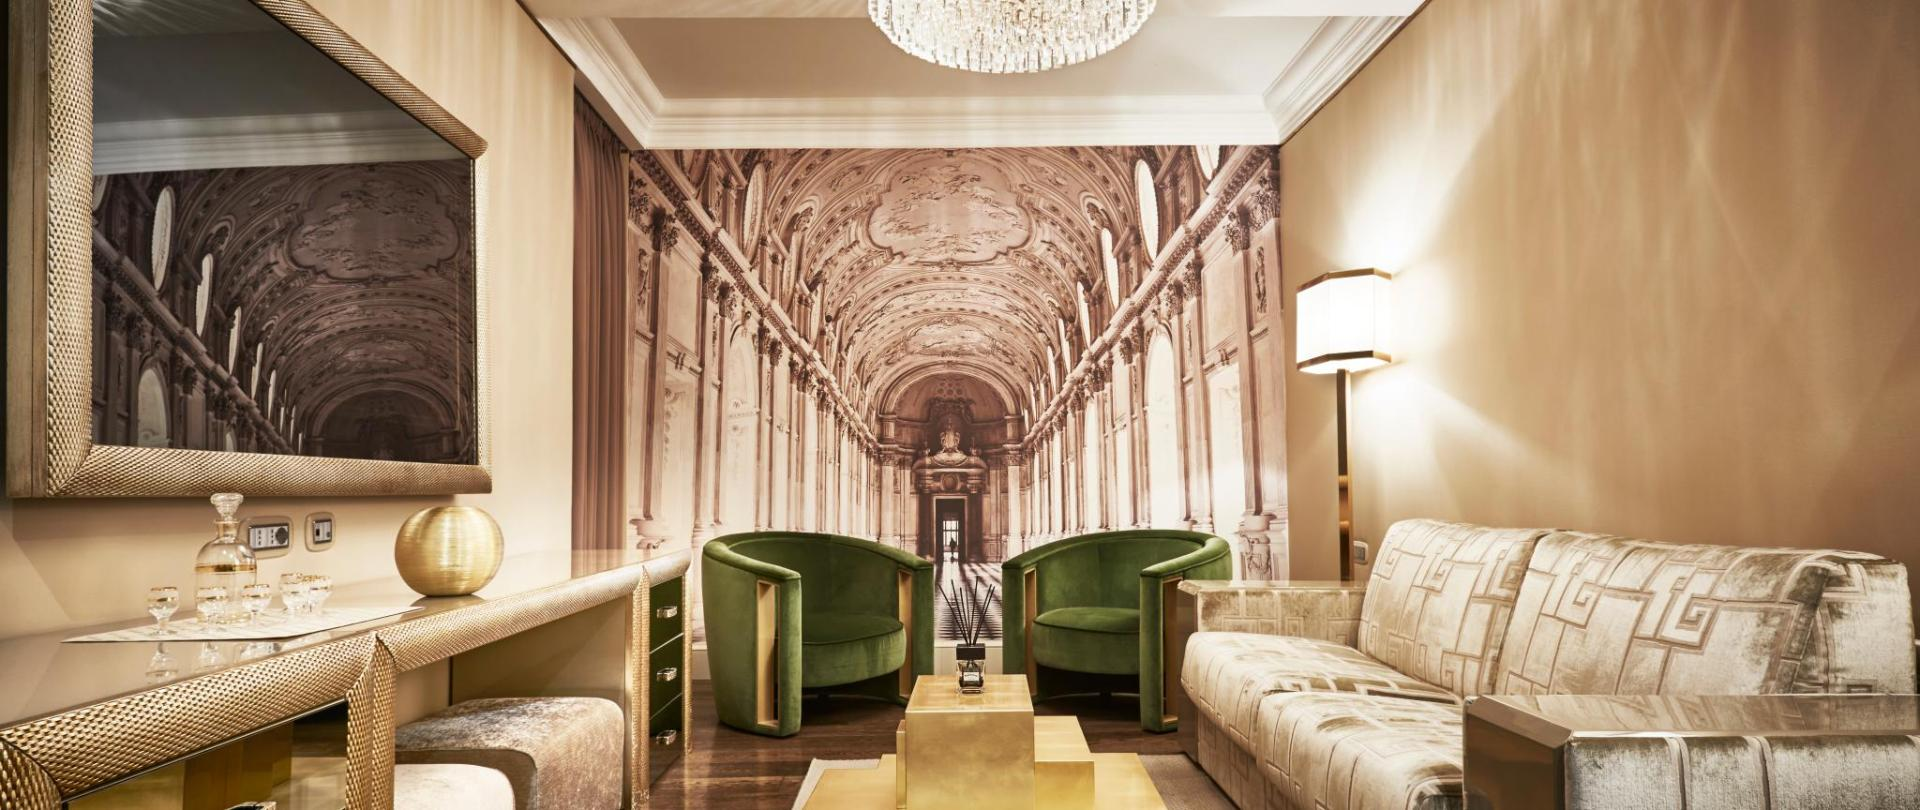 luxury hotel in rome cover 1440x608 - Luxury hotel in Rome: Spanish Royal Suite